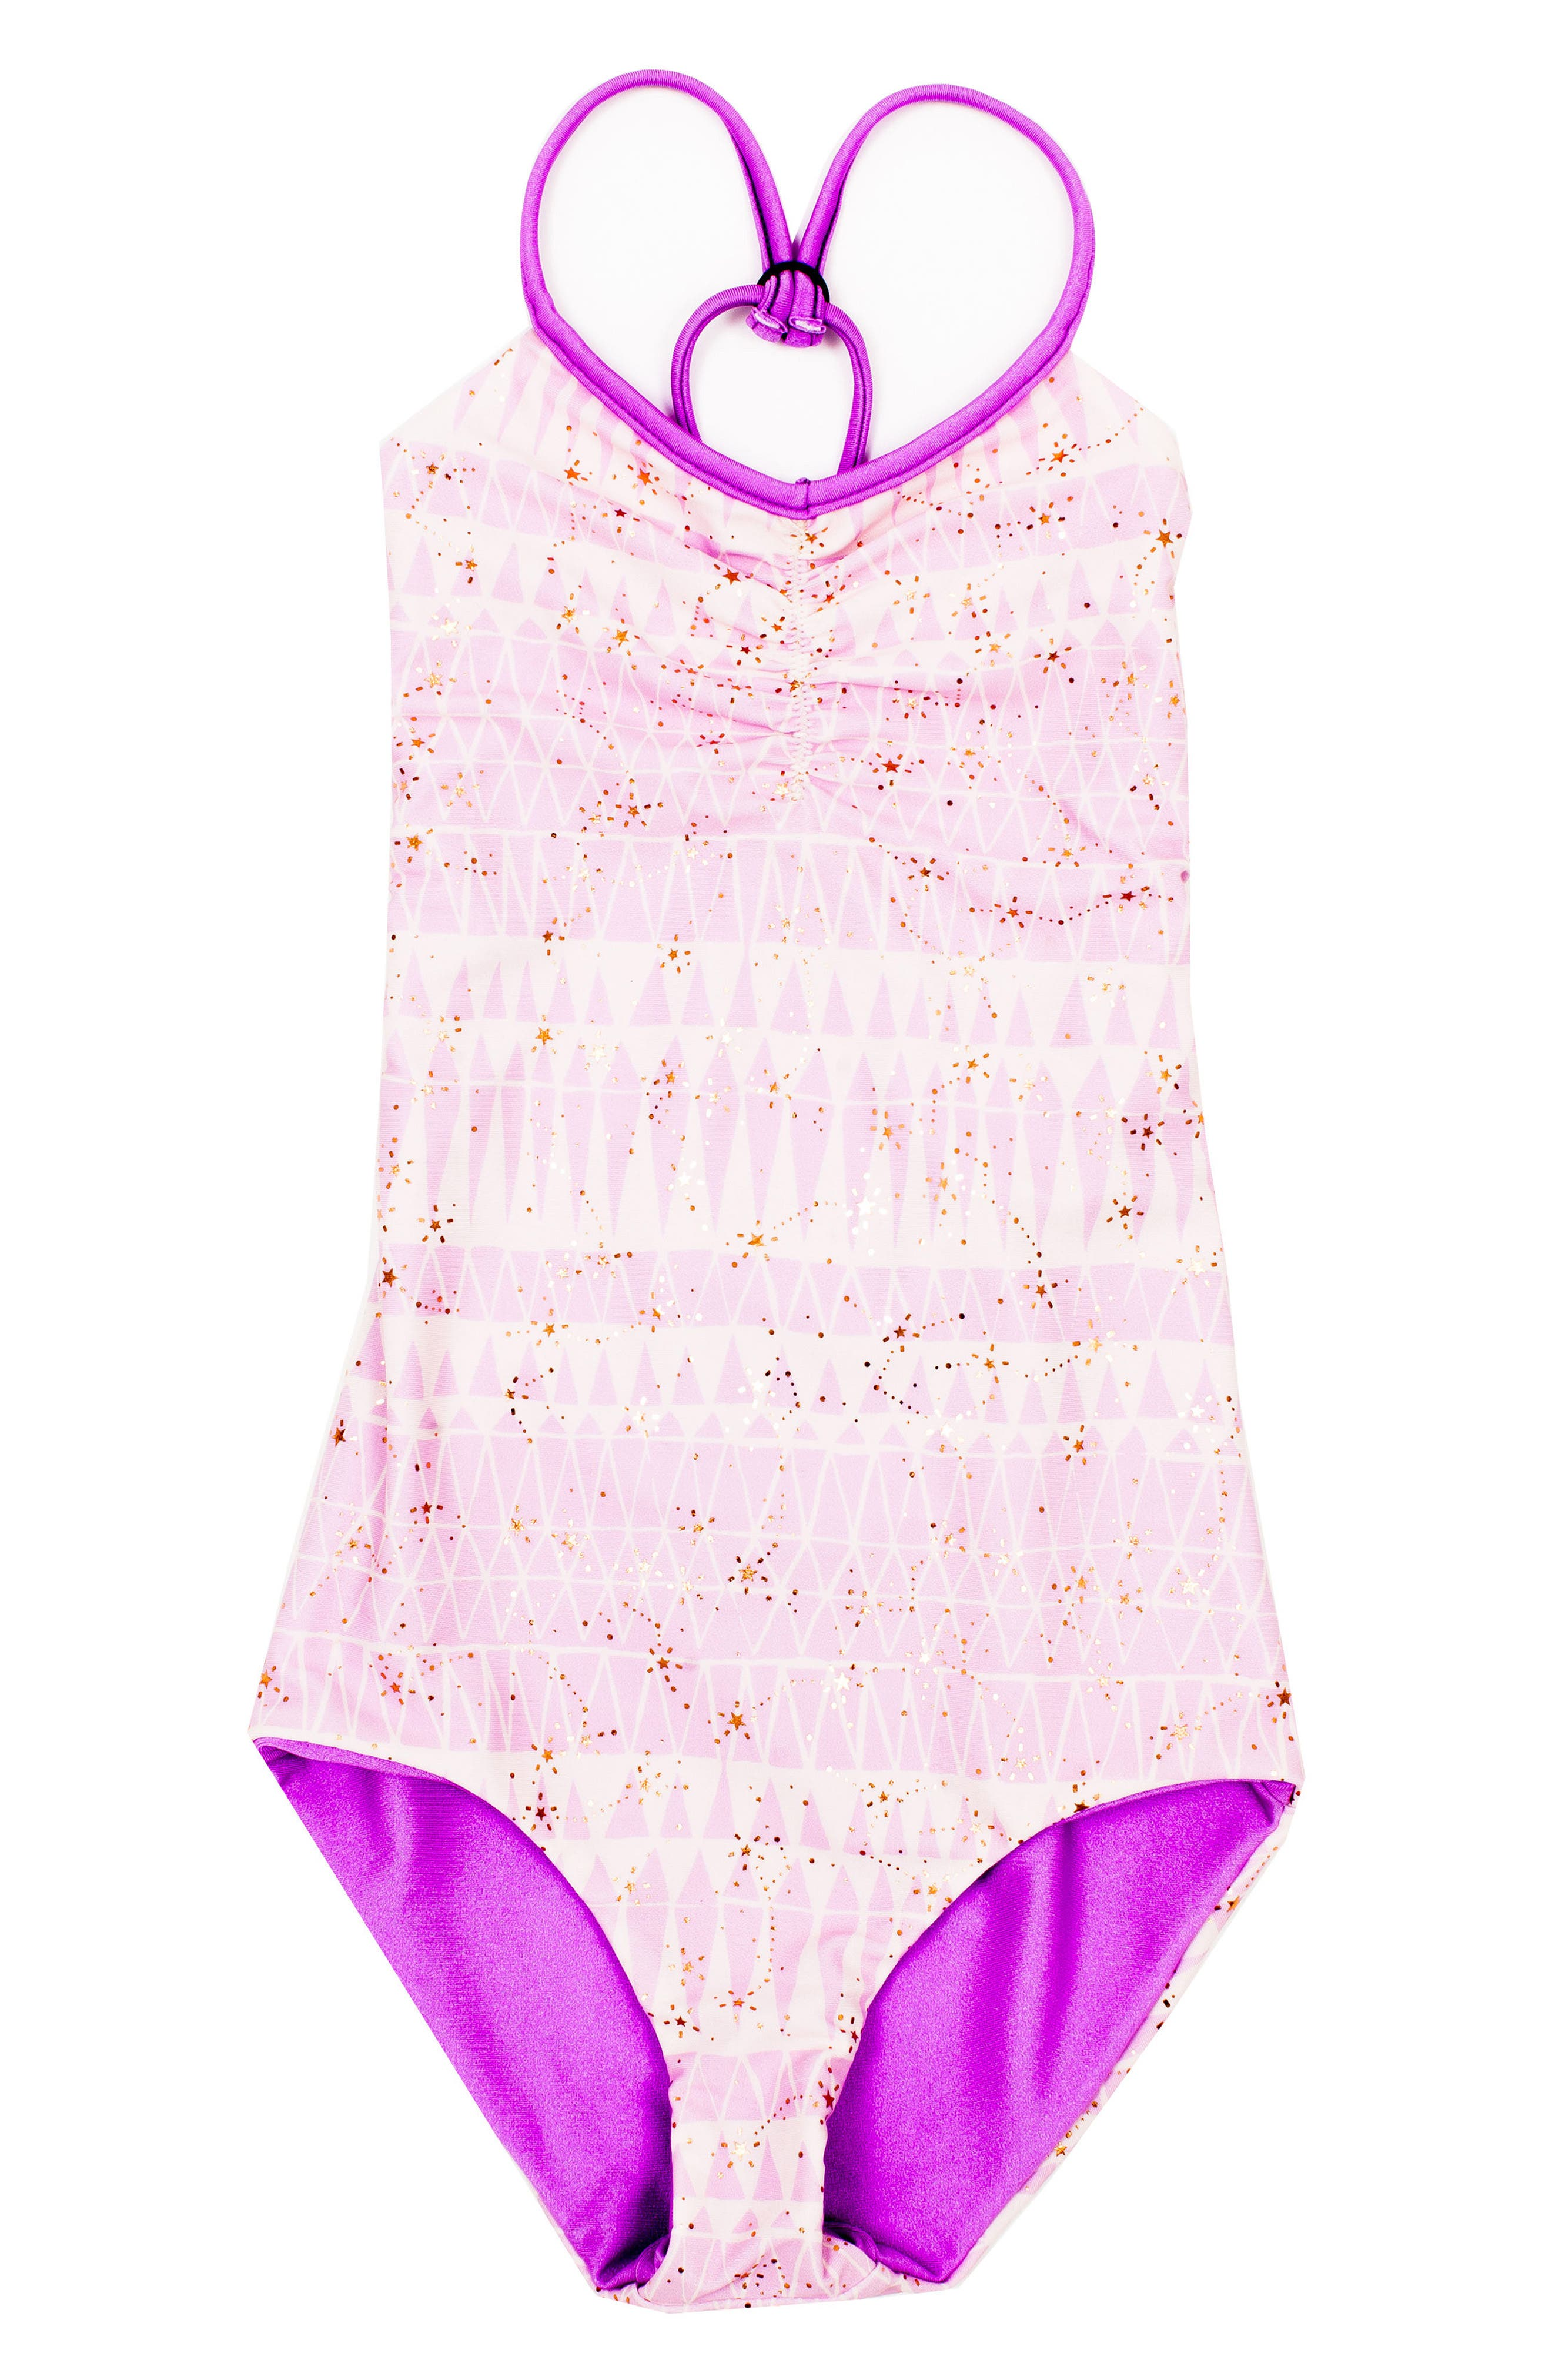 BOWIE X JAMES Catalinakini One-Piece Reversible Swimsuit (Toddler Girls, Little Girls & Big Girls)